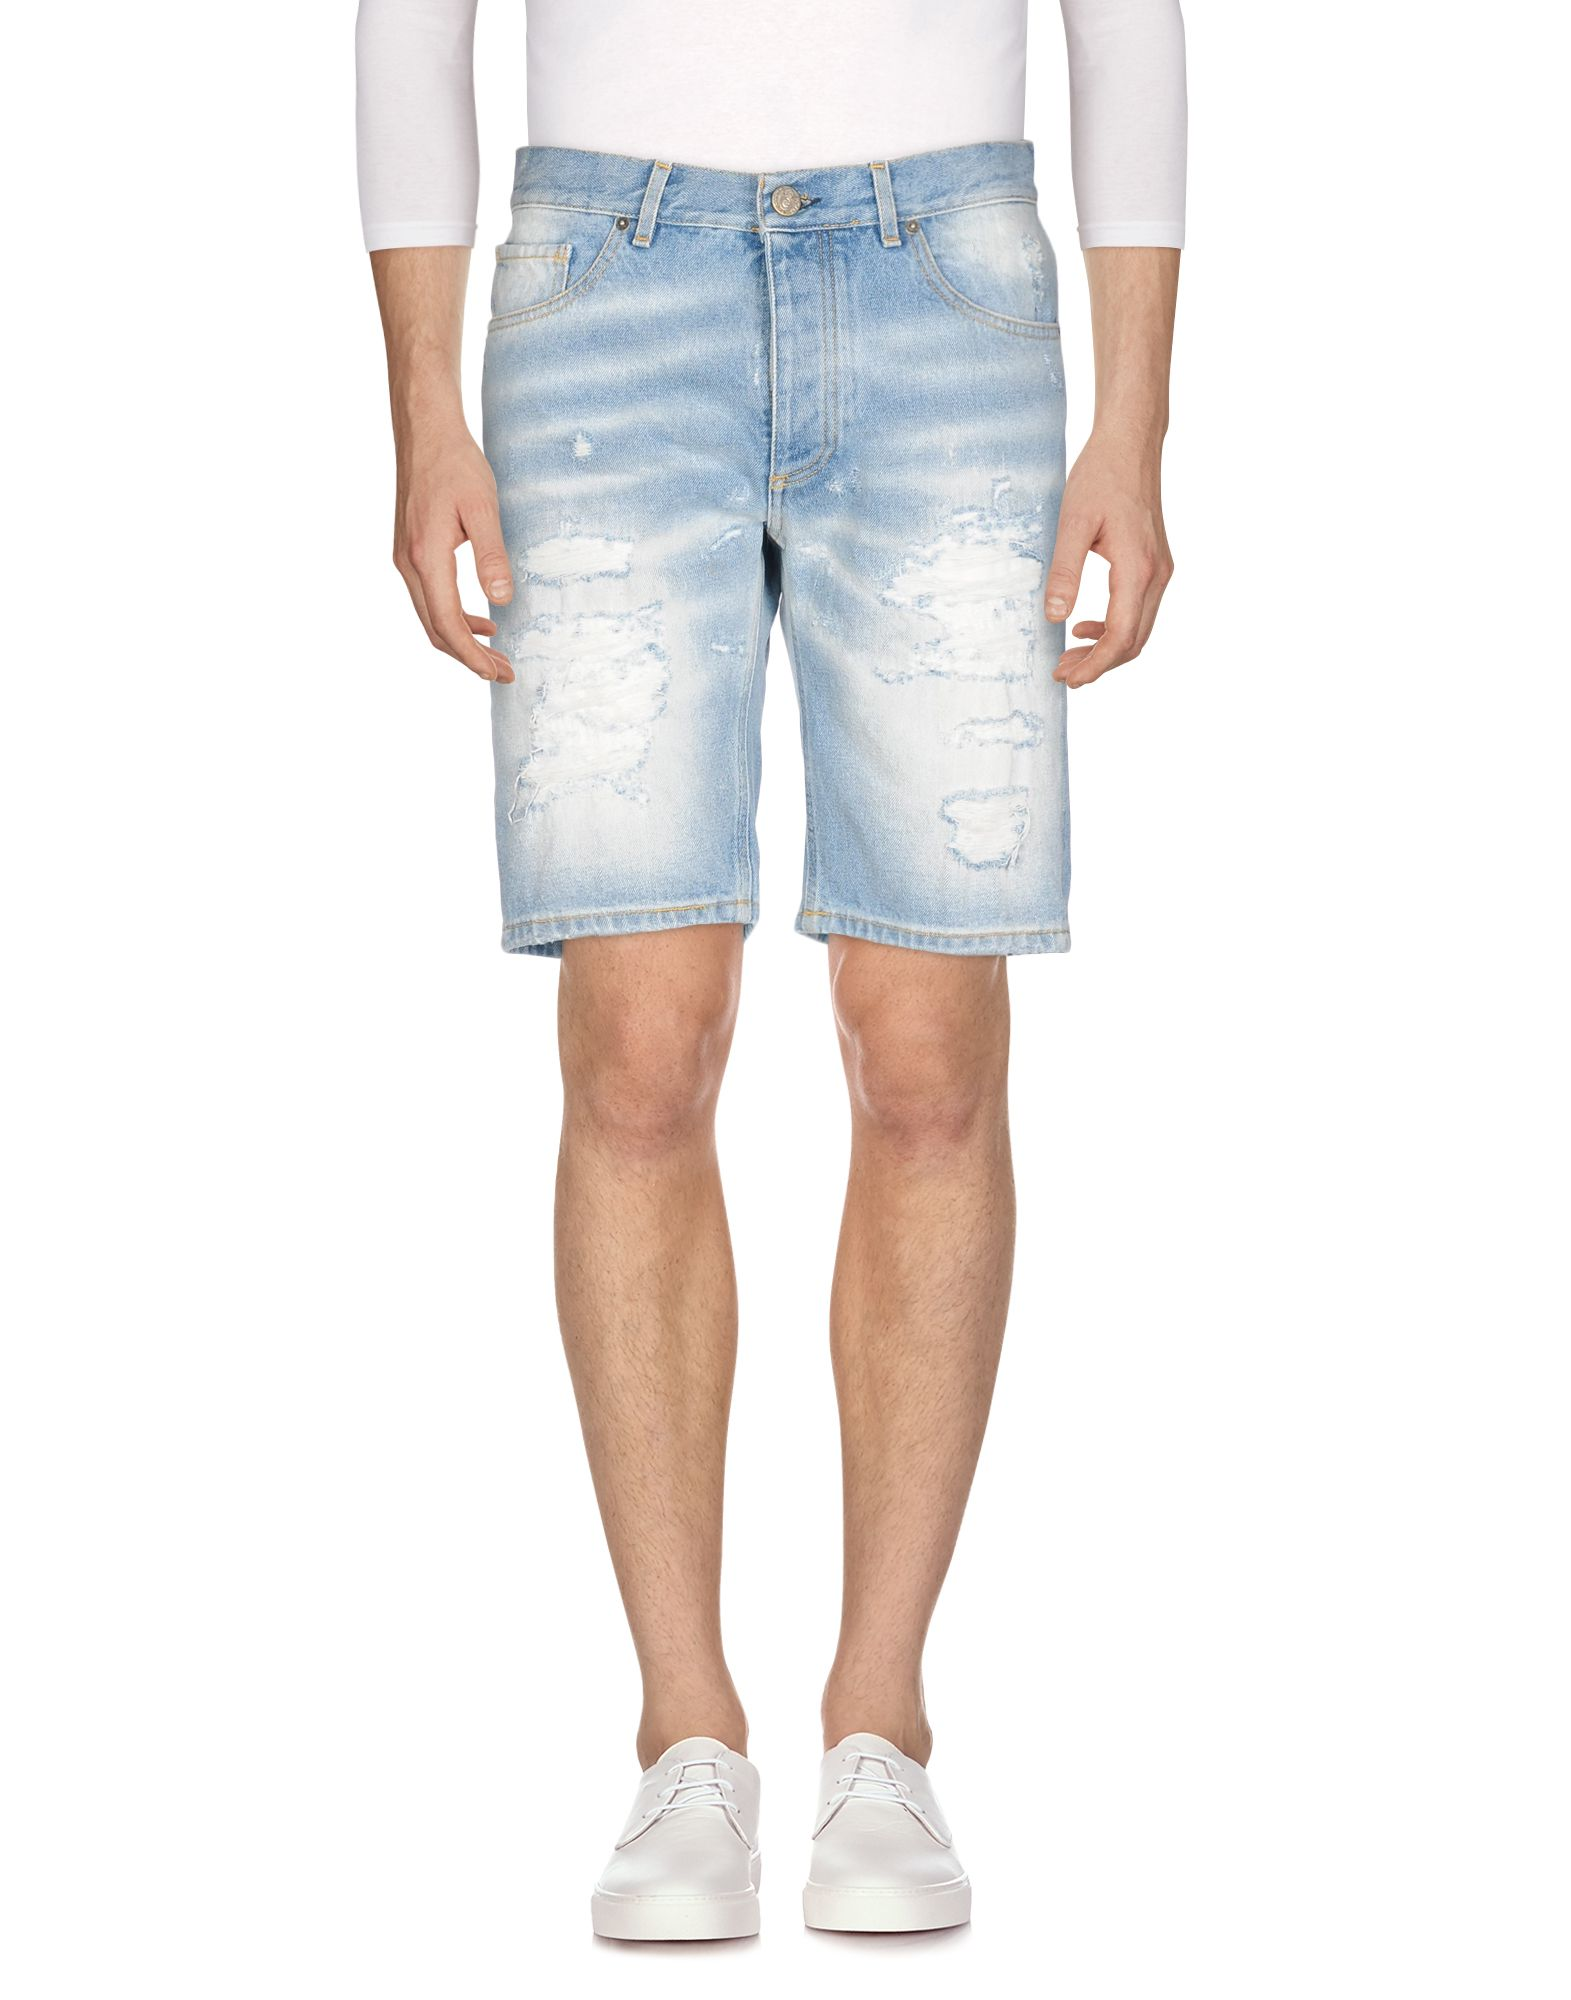 DENIM - Denim bermudas PMDS Premium Mood Denim Superior Outlet Many Kinds Of Cheap Sale Low Price Fee Shipping Free Shipping Good Selling Real Online VUYPLFs